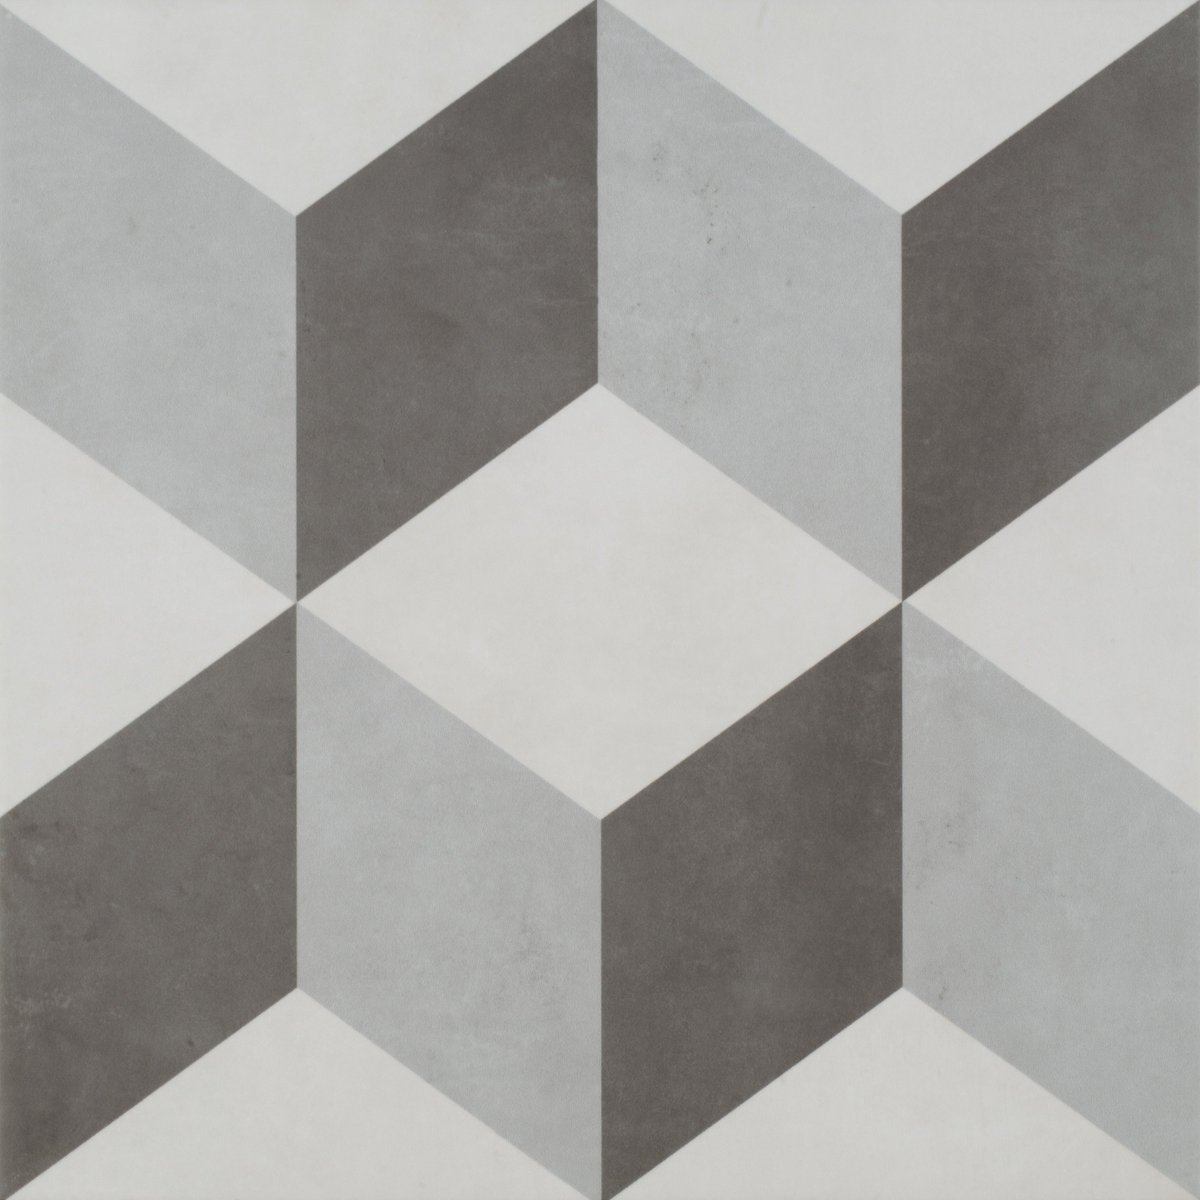 British Ceramic Tile On Twitter Inspired By Illusion Our Featurefloor Works In Any Clic Or Contemporary E Inspirationtuesday Tiles